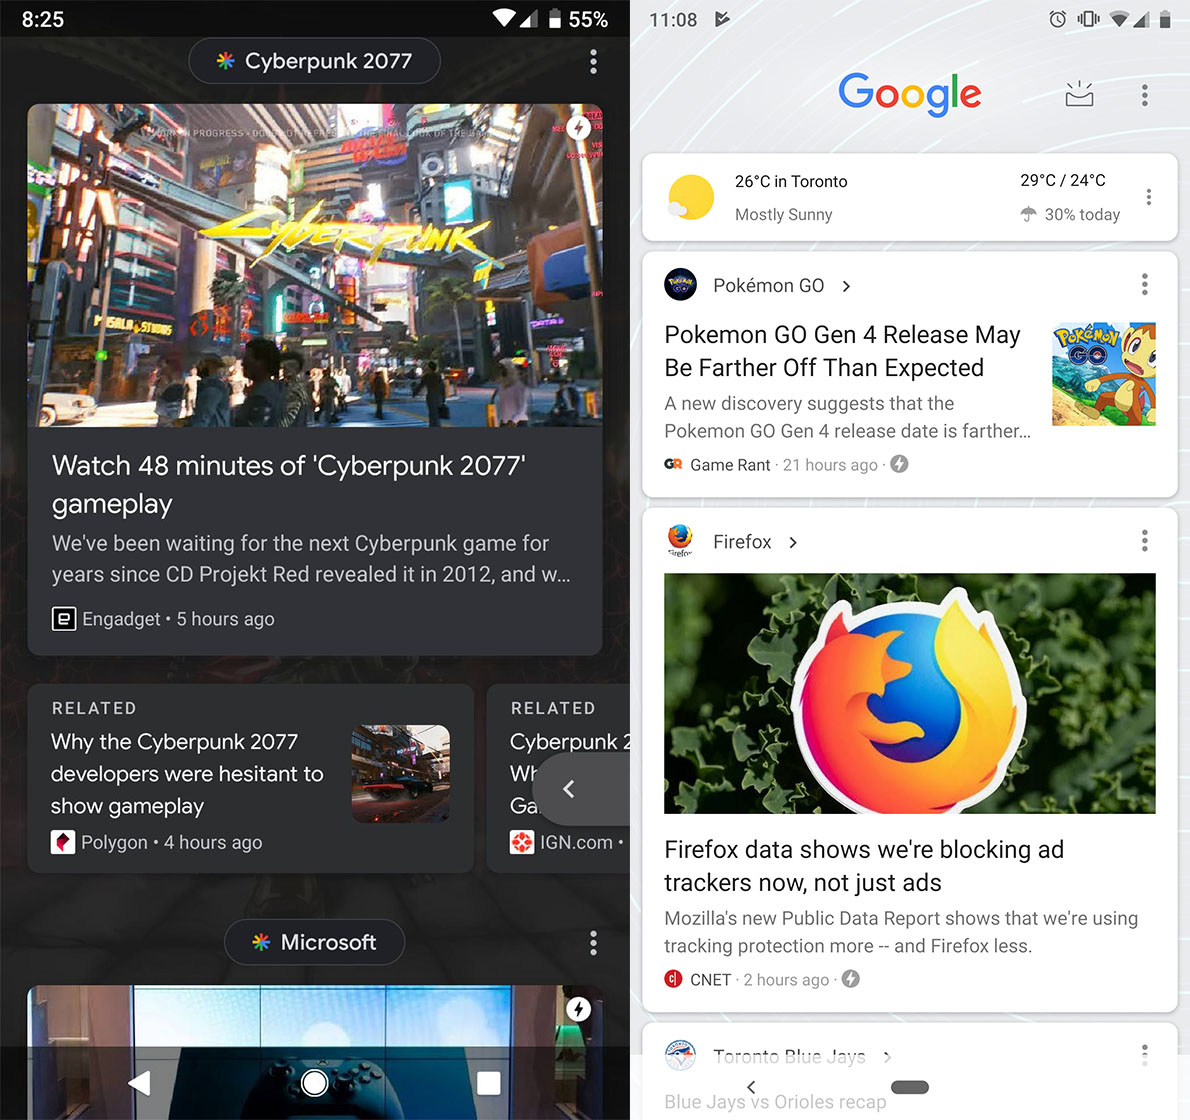 Google Feed new look (left) vs. old (right)